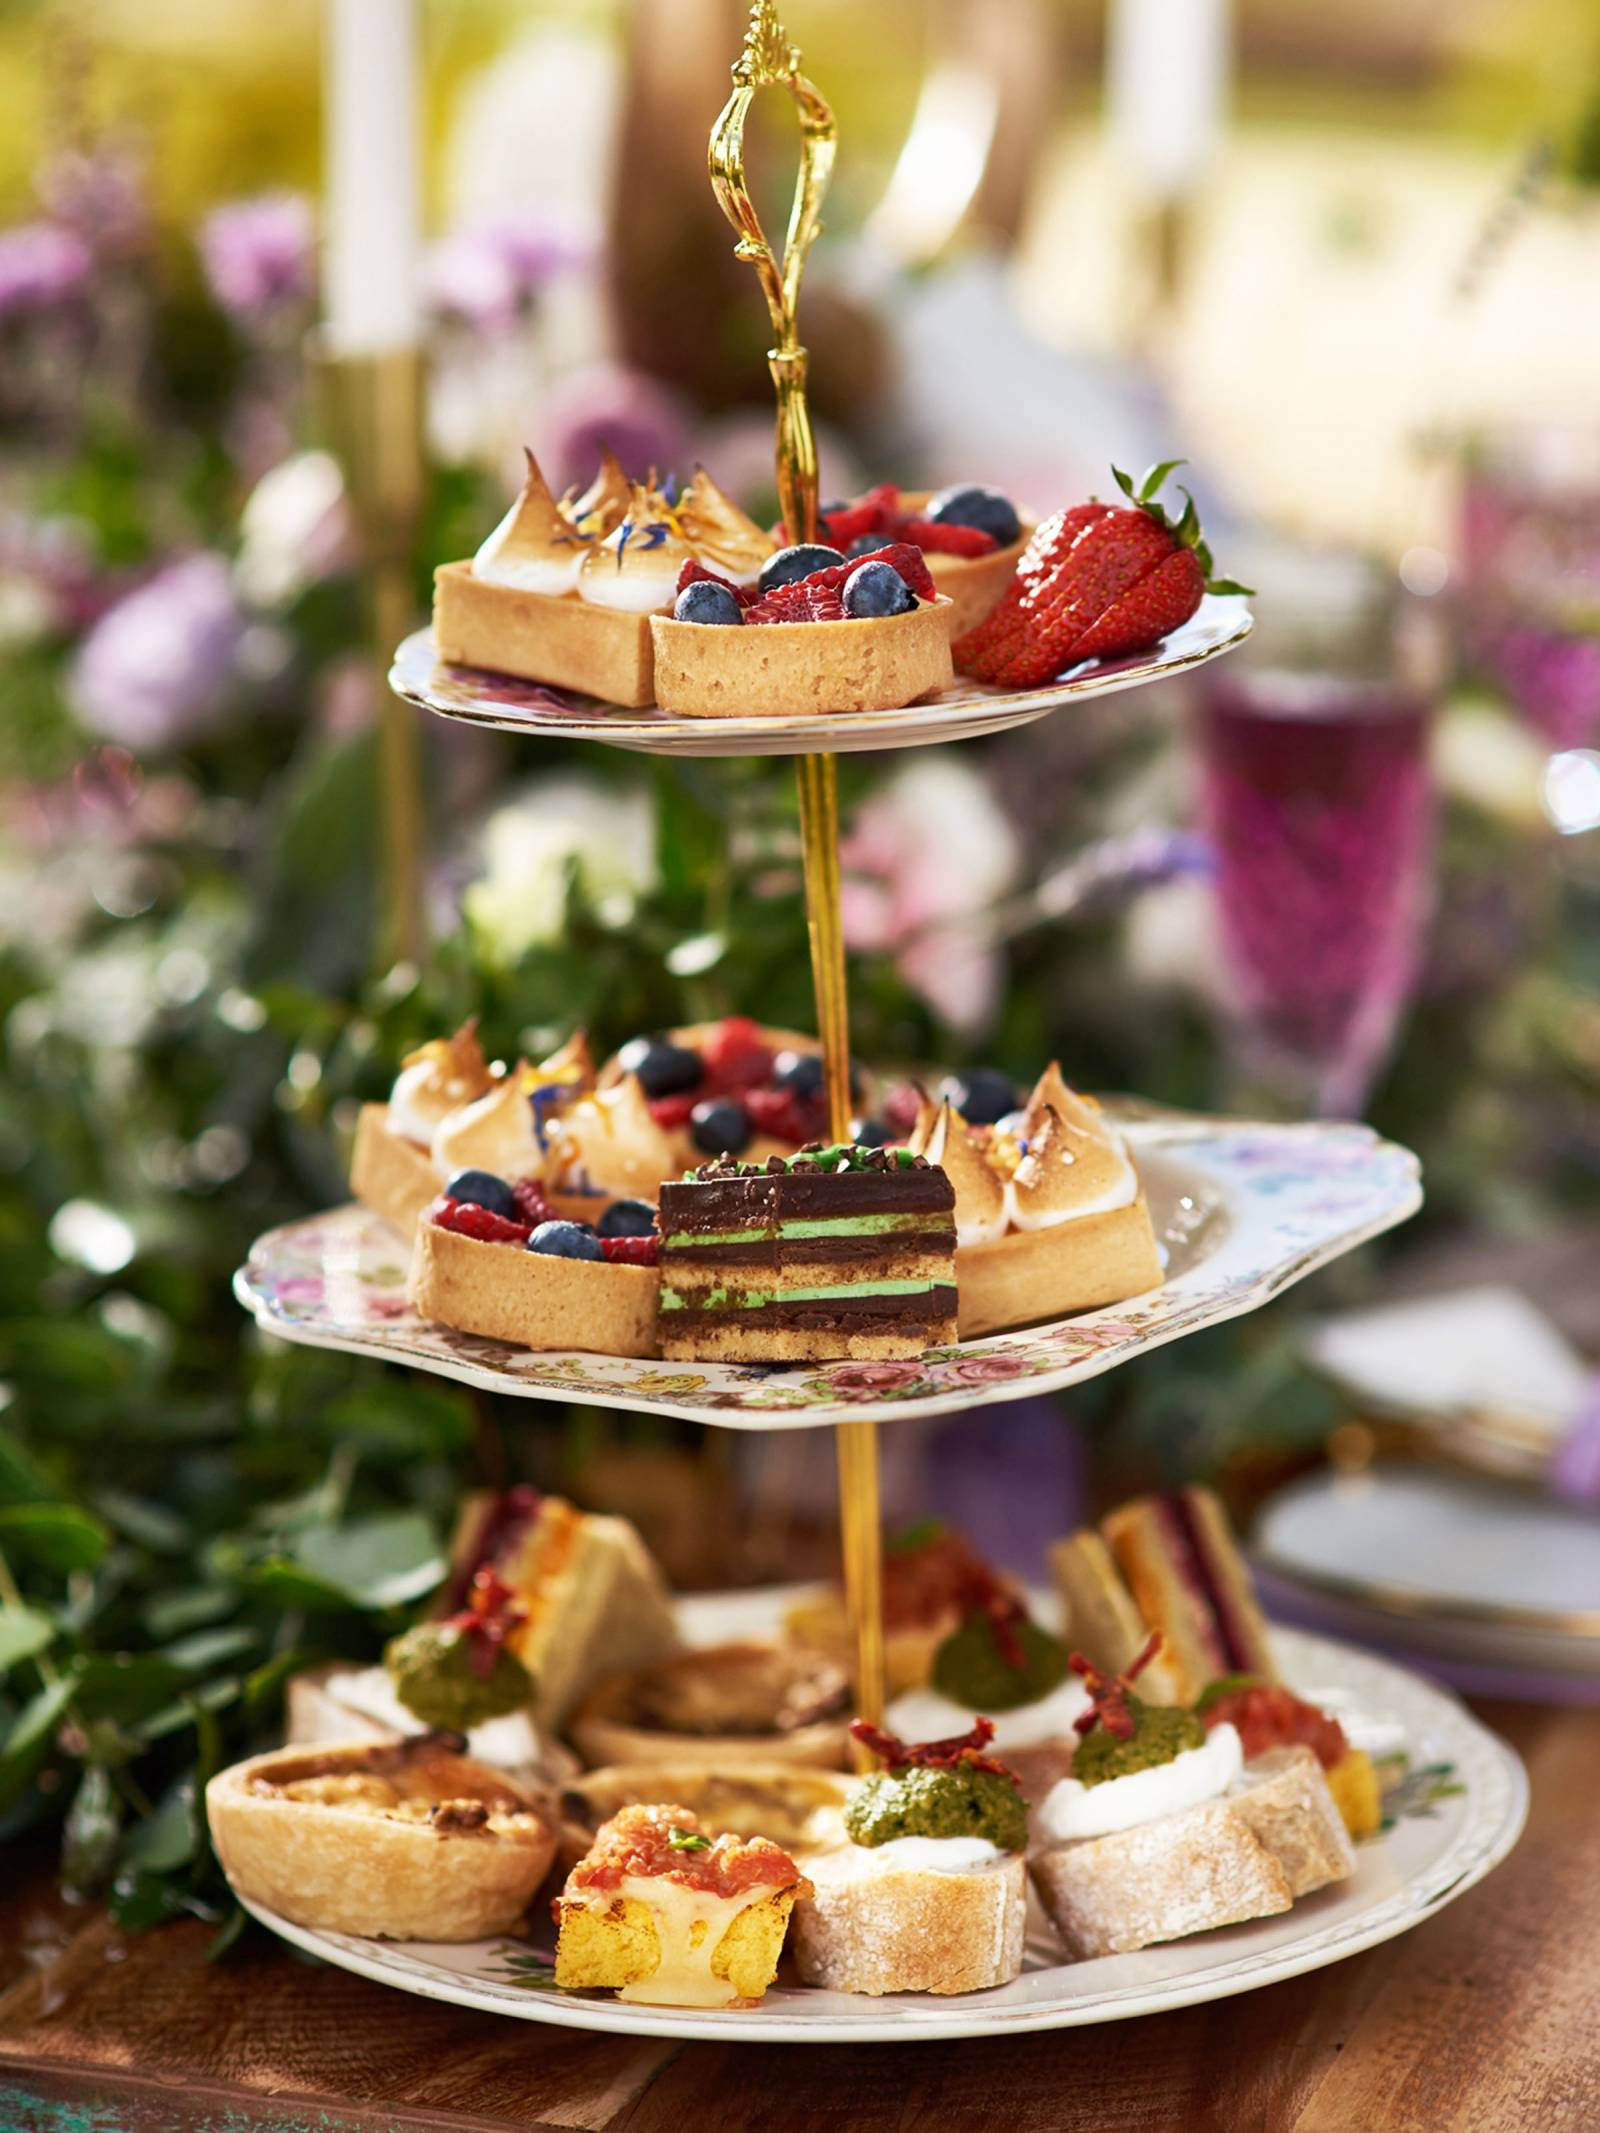 Three tiered dessert tower with fruit, tarts, meringue pastries